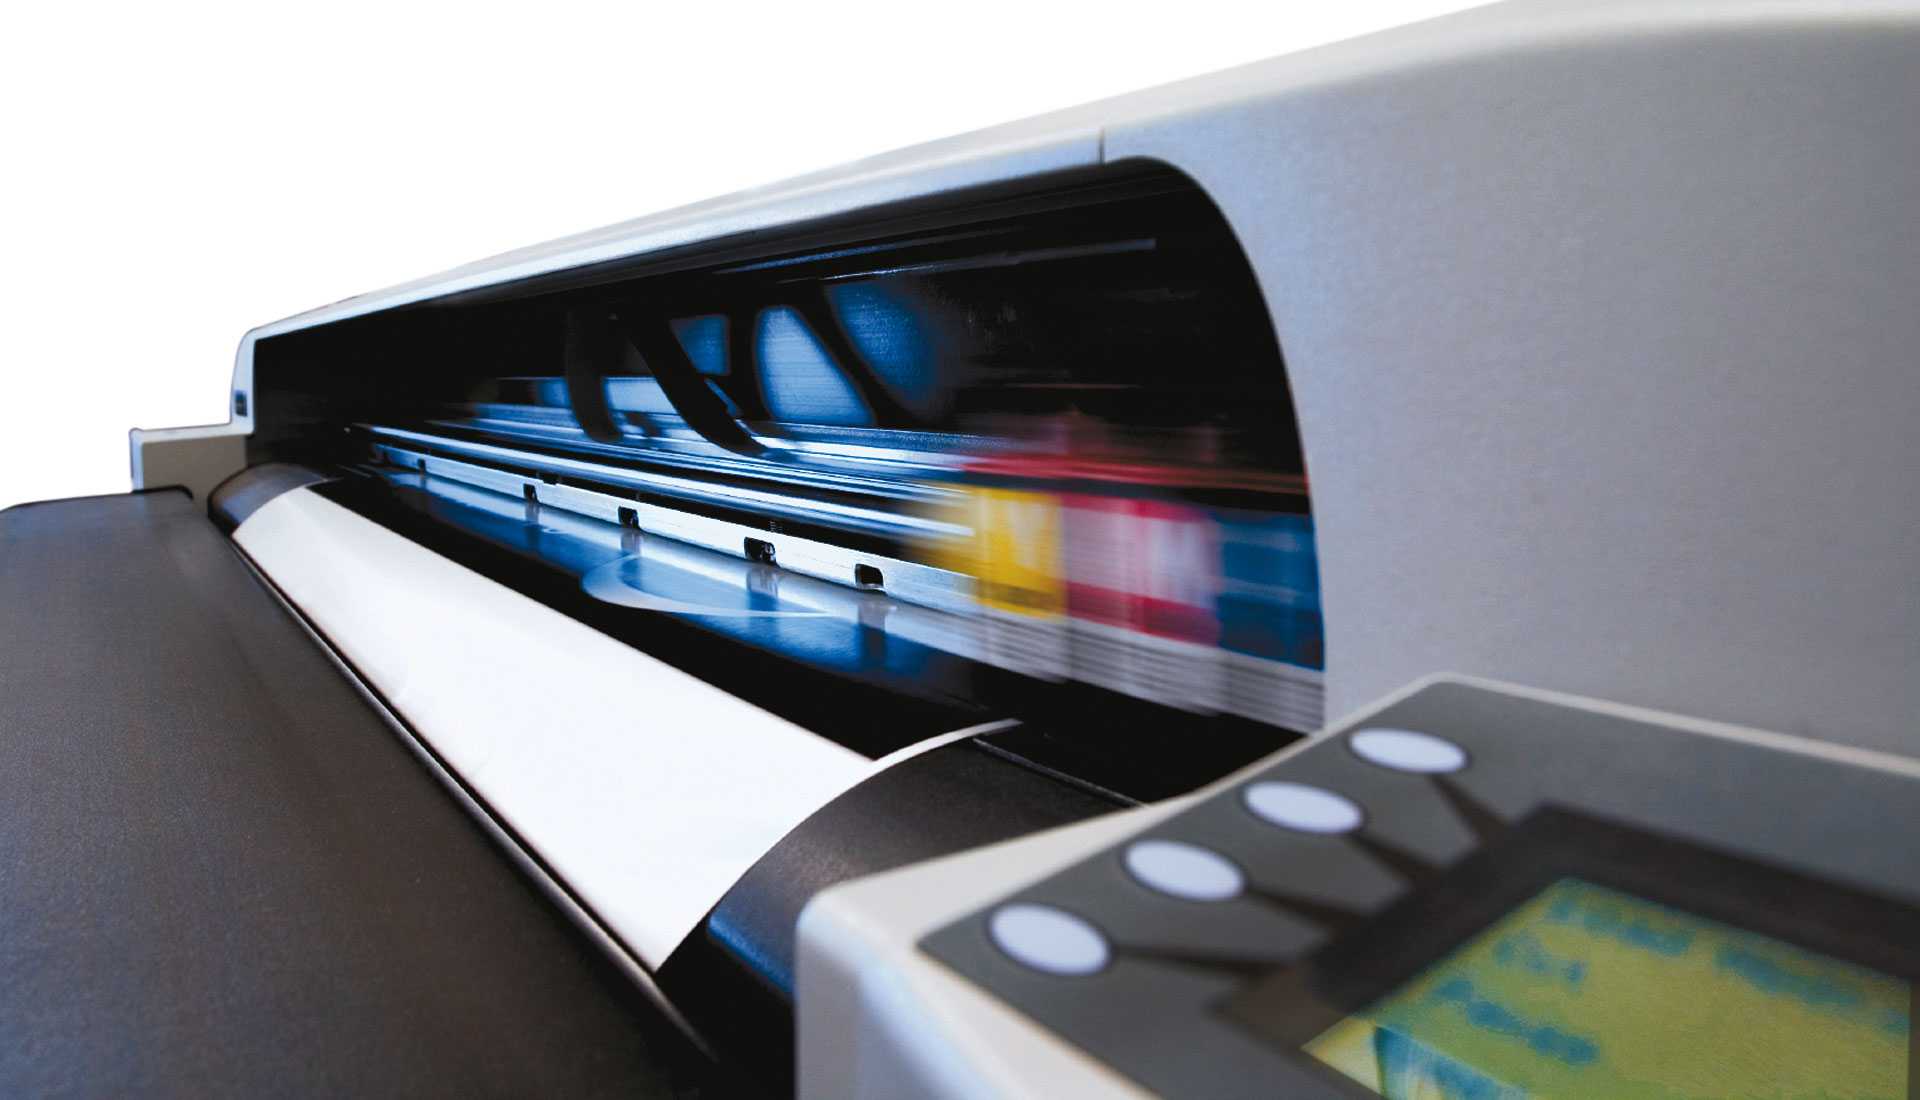 tech print welcome to our website we are a litho printing company